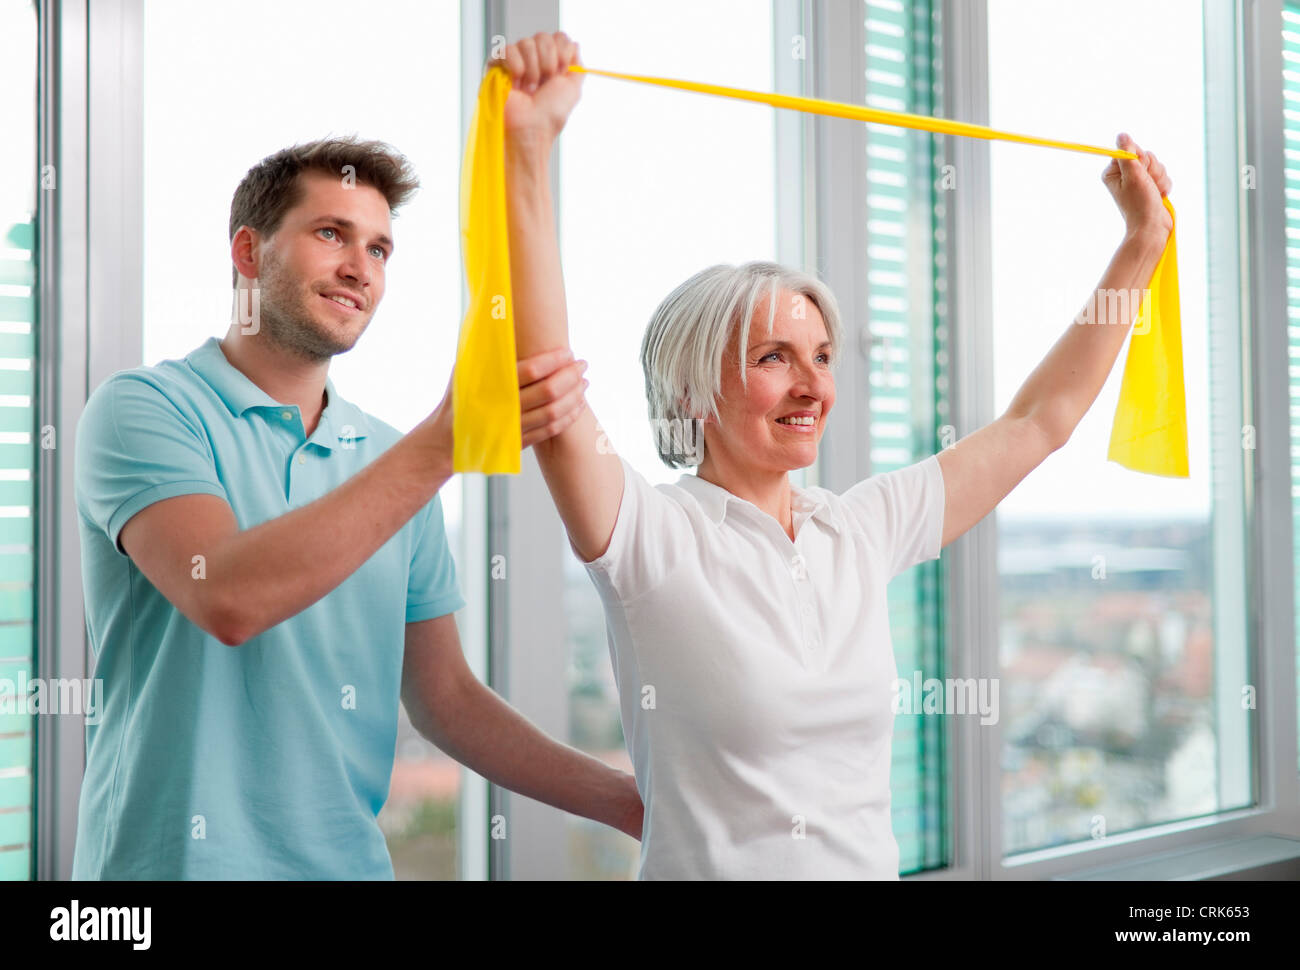 Trainer working with woman in gym Stock Photo